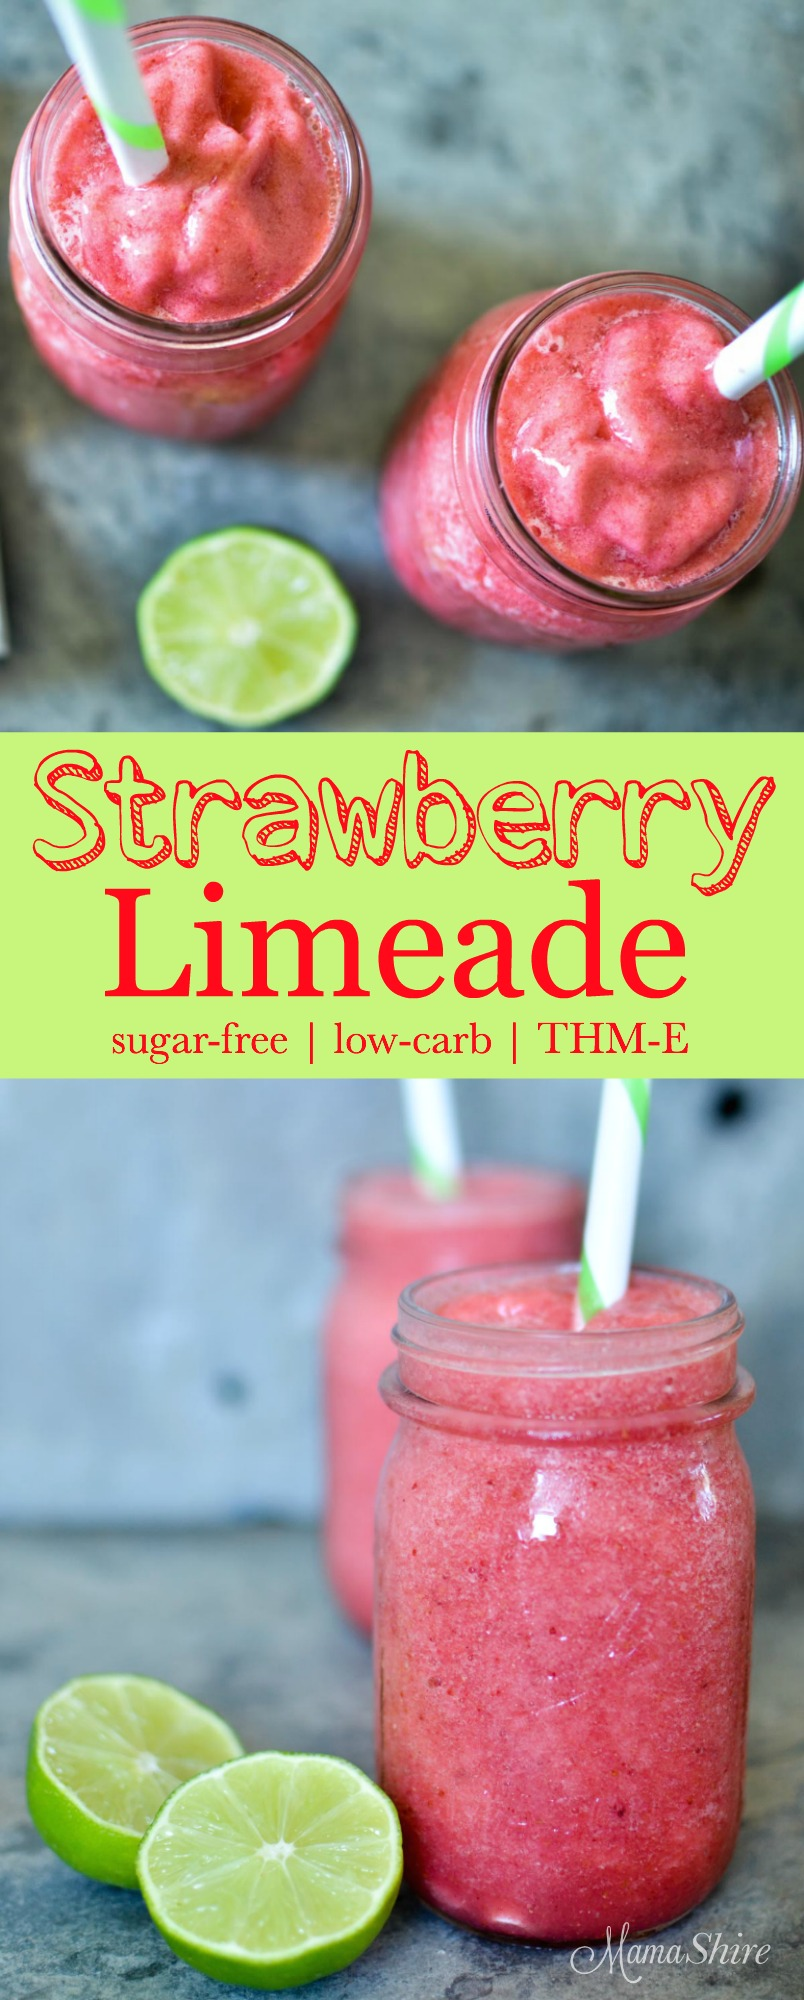 Heatlhy Strawberry Limeade - Sugar-free, low-carb, THM-E